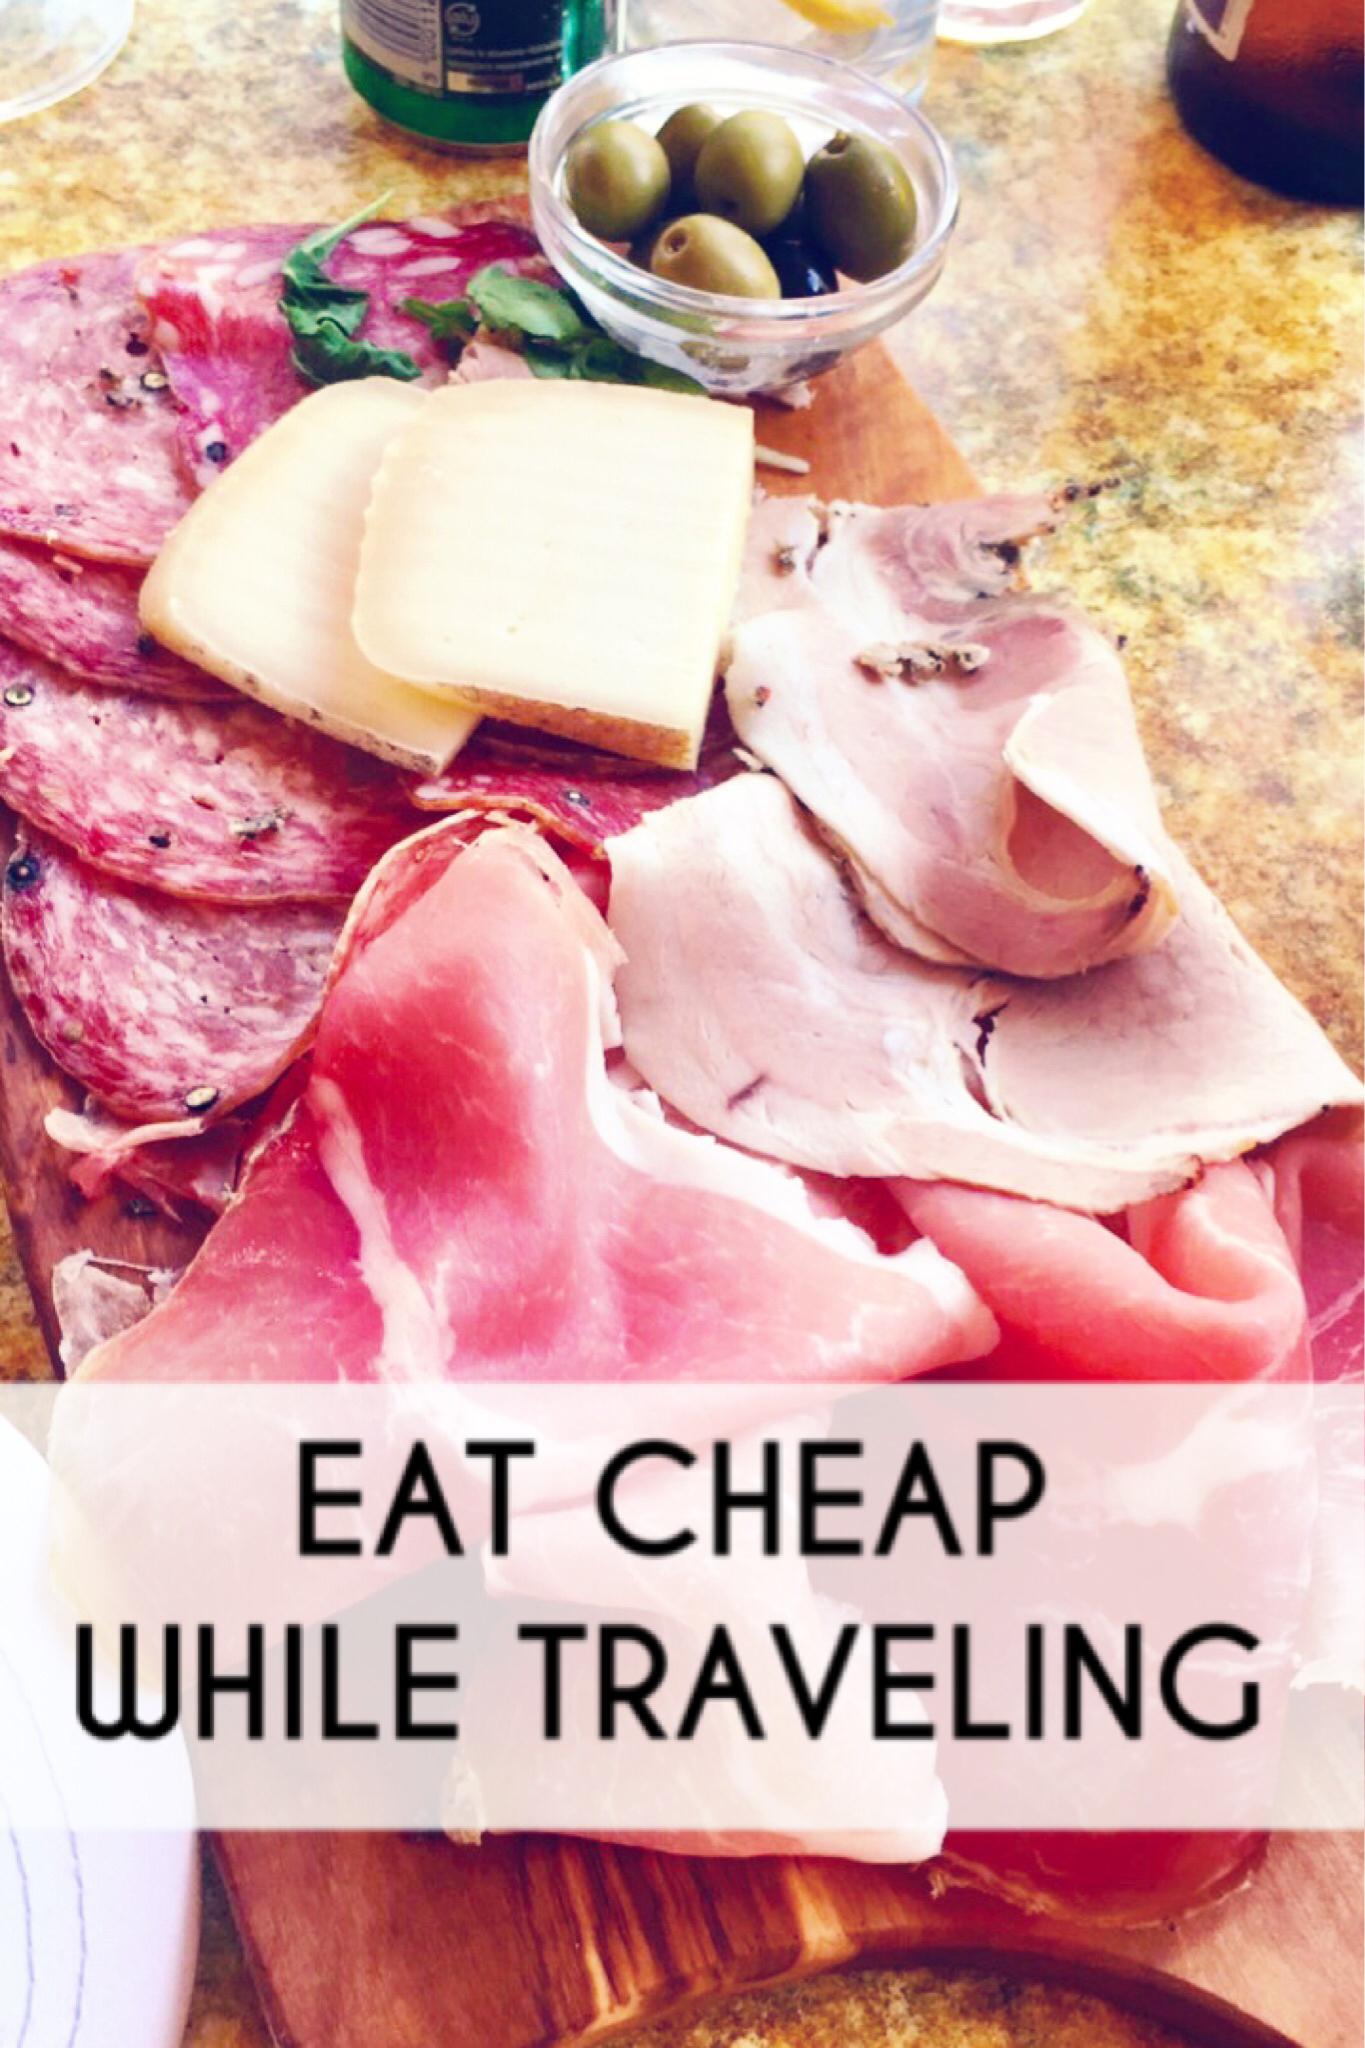 Eat Cheap While Traveling | www.paisleyandfig.com